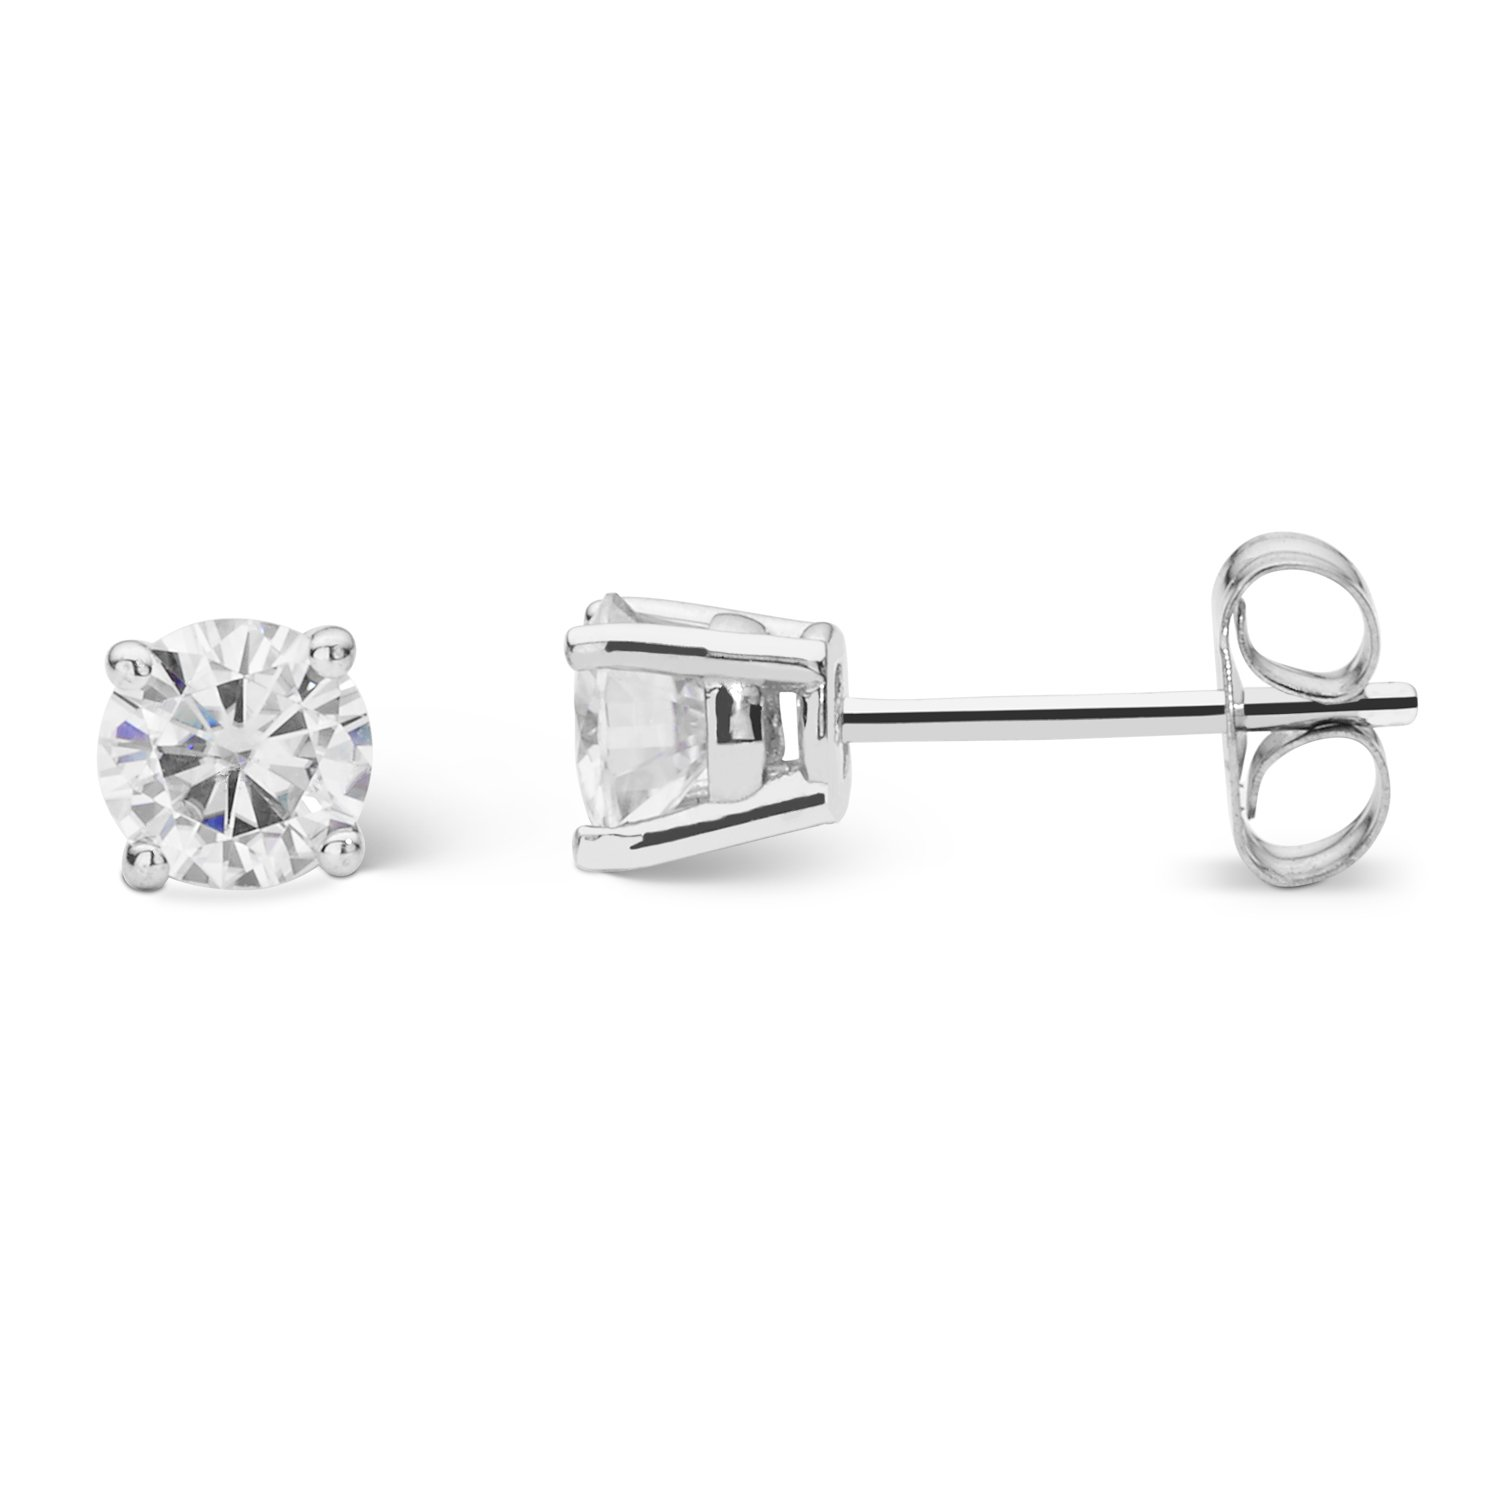 pin set stone beautiful a stud vintage scroll these earrings center in featuring moissanite